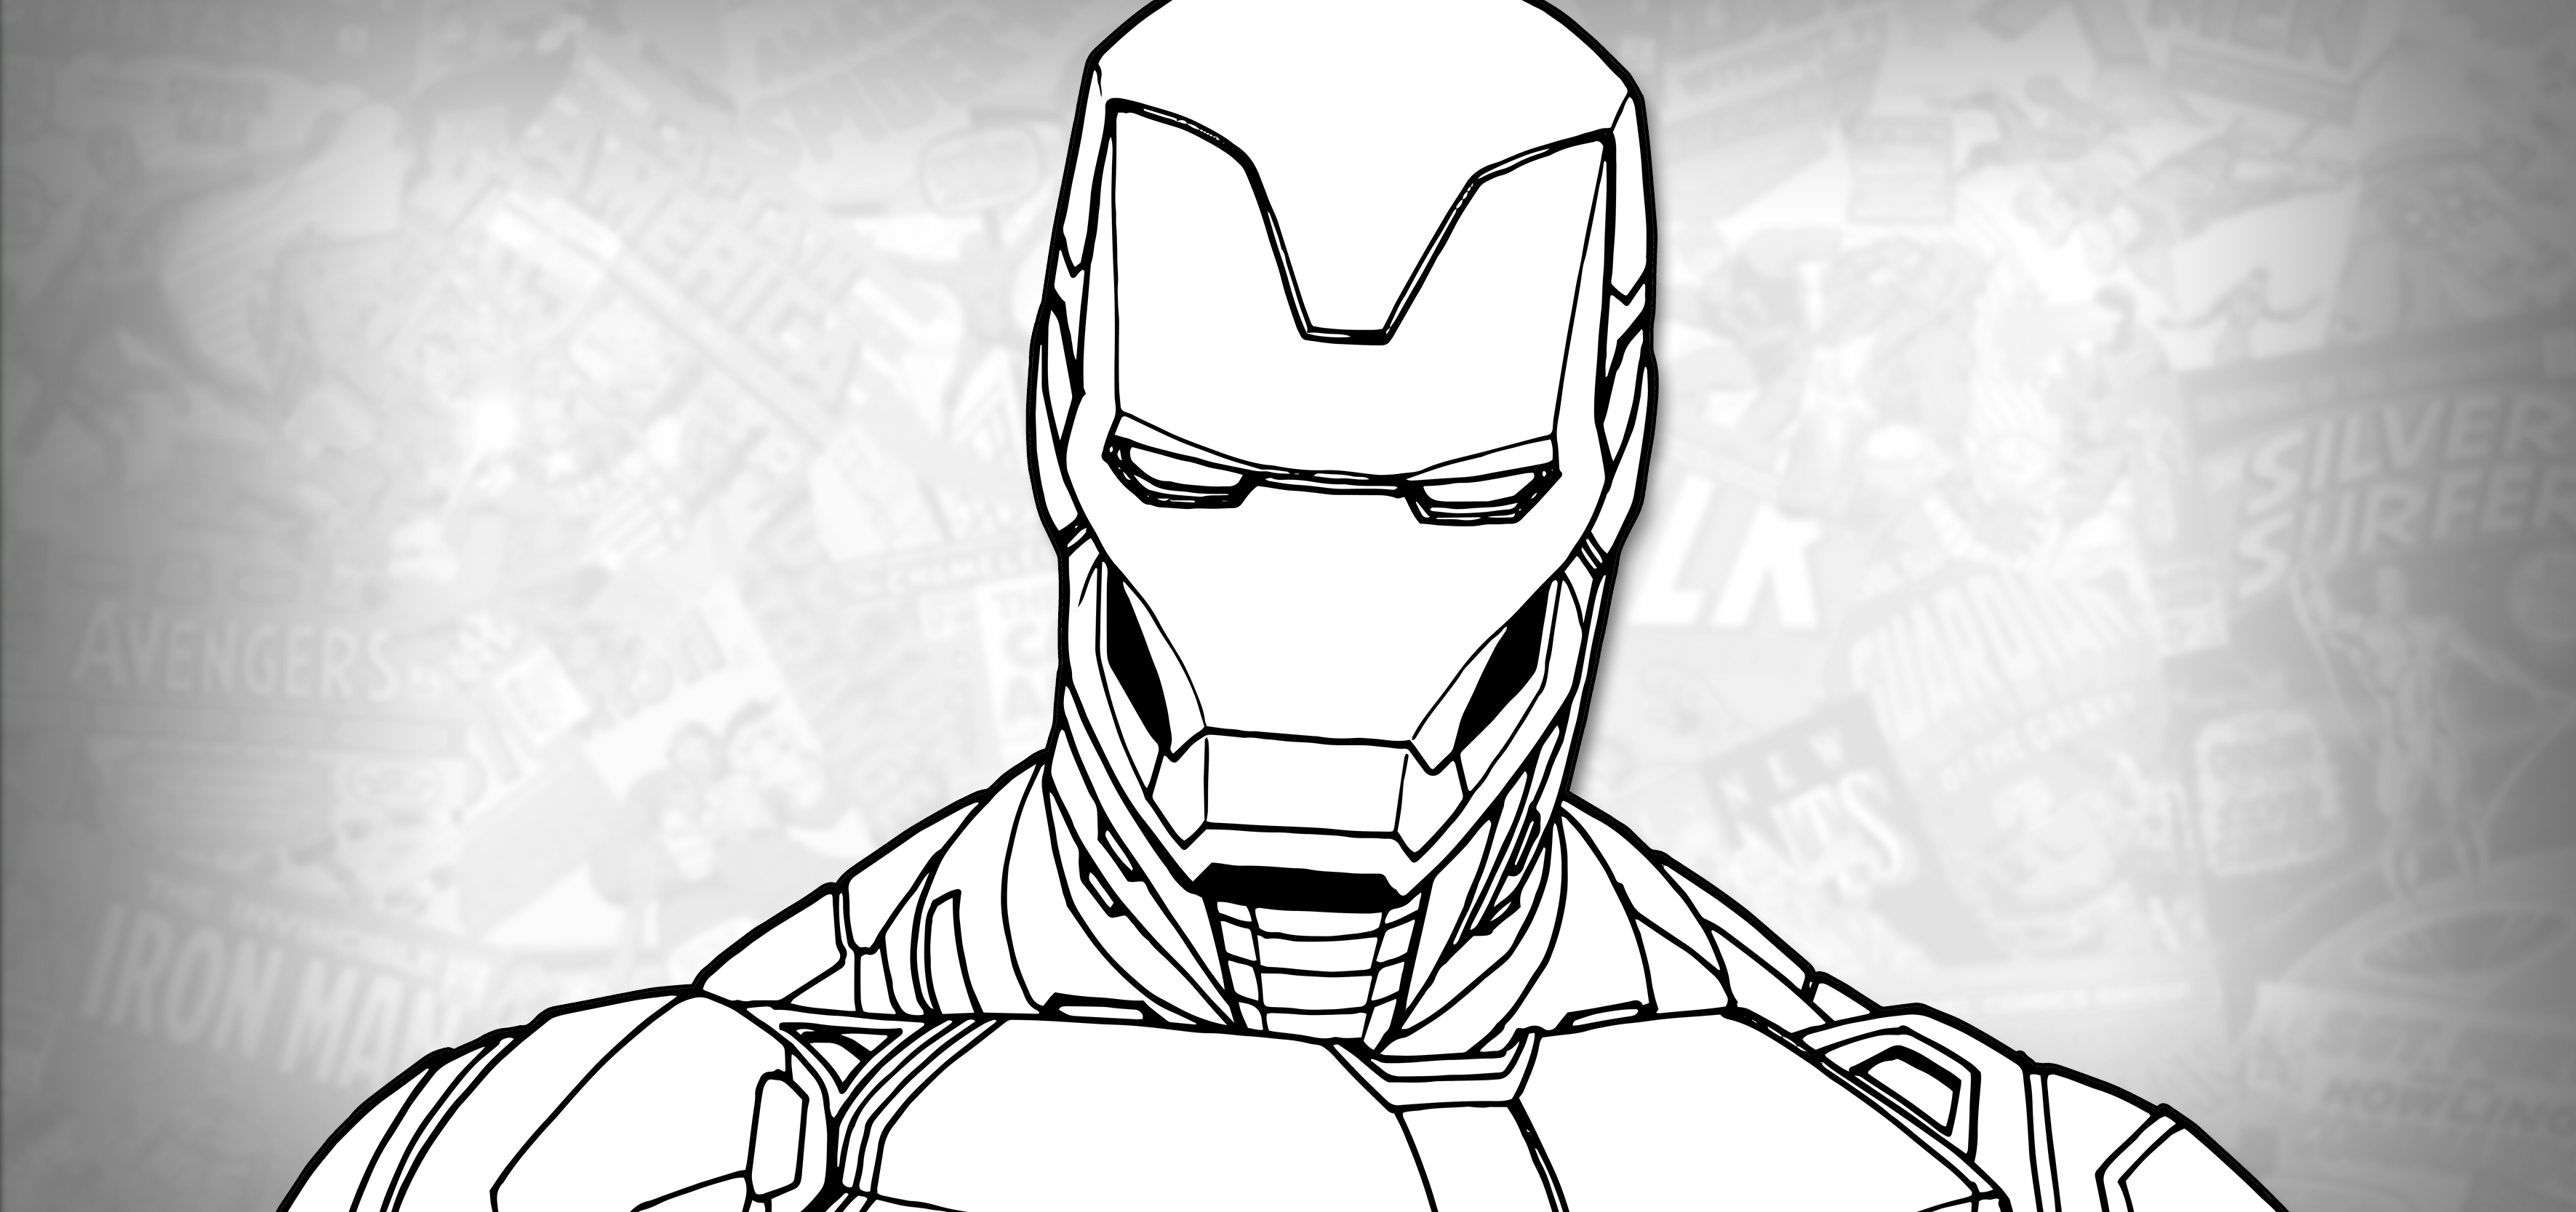 how to draw a iron man helmet collection of iron man clipart free download best iron helmet how a to draw man iron